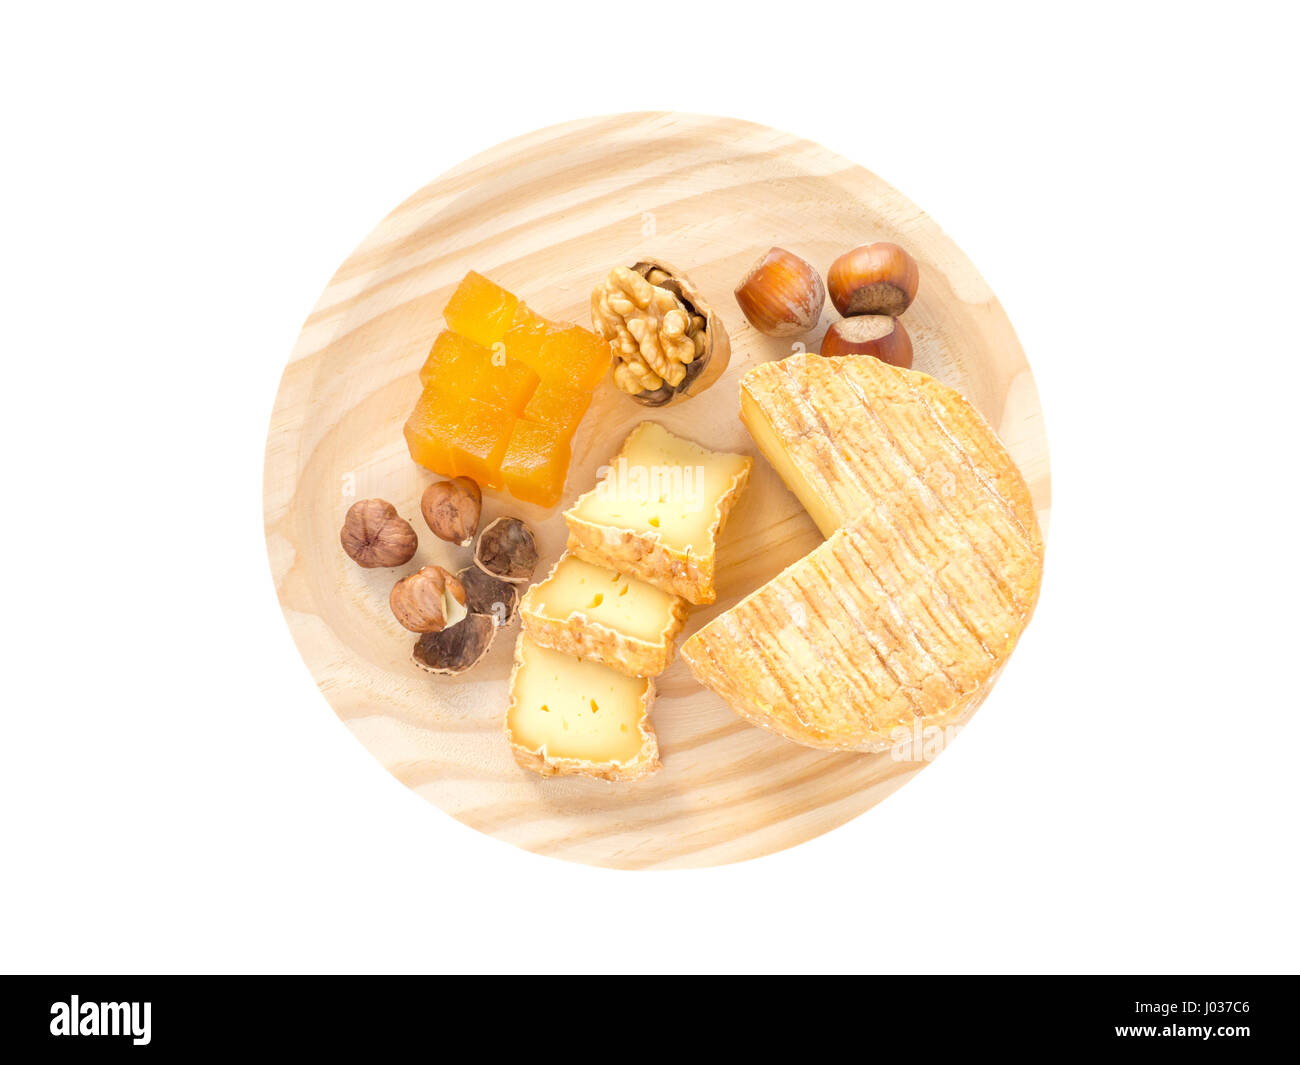 Soft washed-rind cheese, hazelnuts, walnut and marmalade on the textured wooden board top view isolated on white - Stock Image